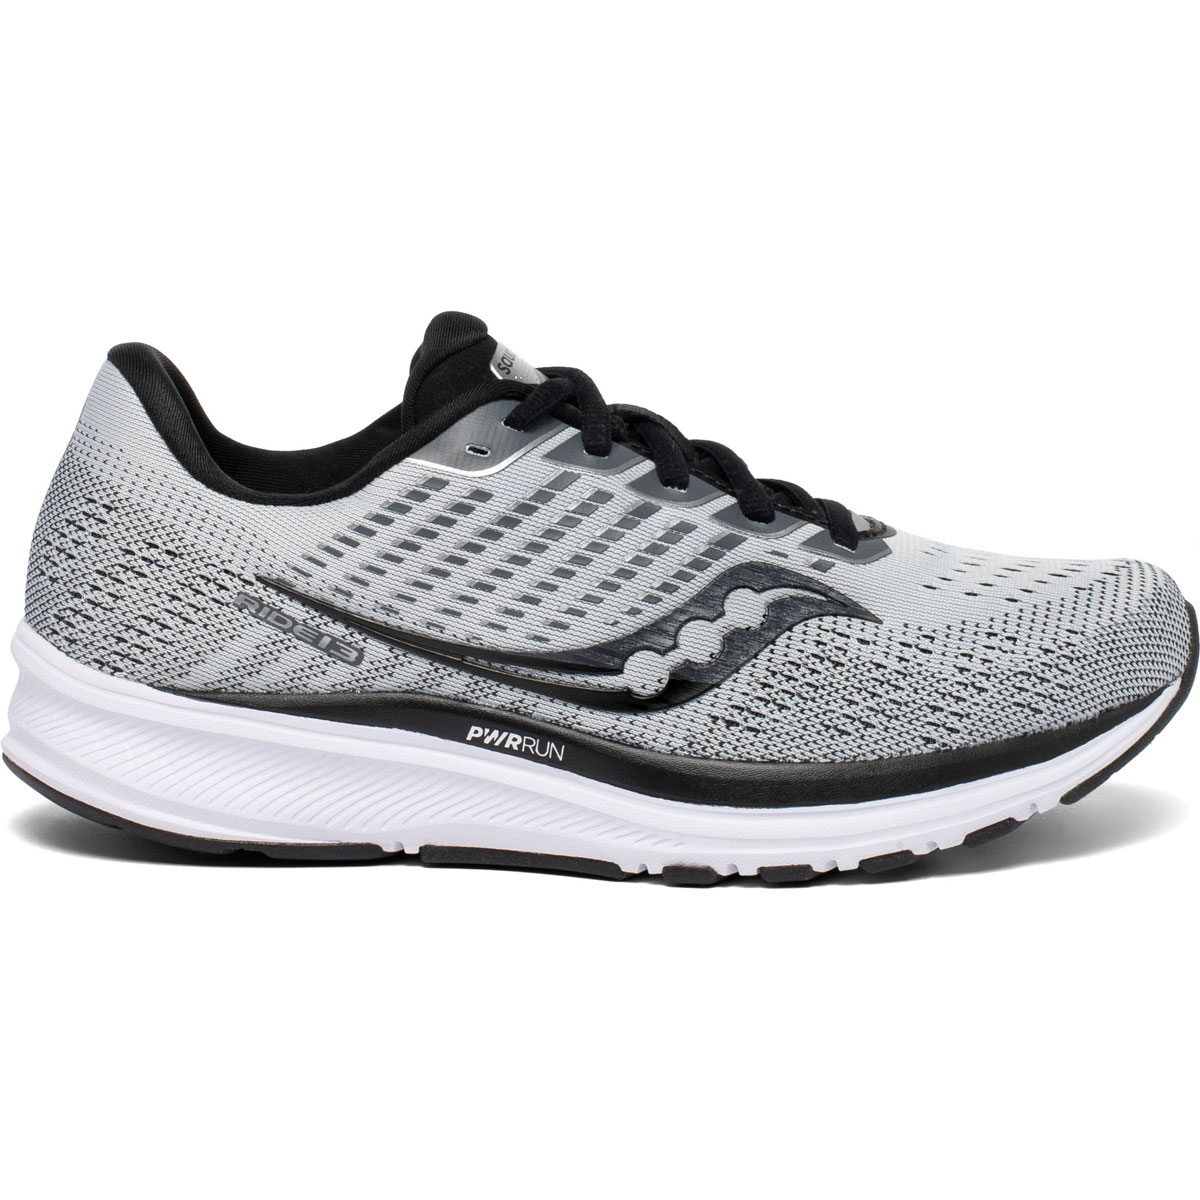 Women's Saucony Ride 13 Running Shoe  - Color: Alloy/Black - Size: 5 - Width: Regular, Alloy/Black, large, image 1